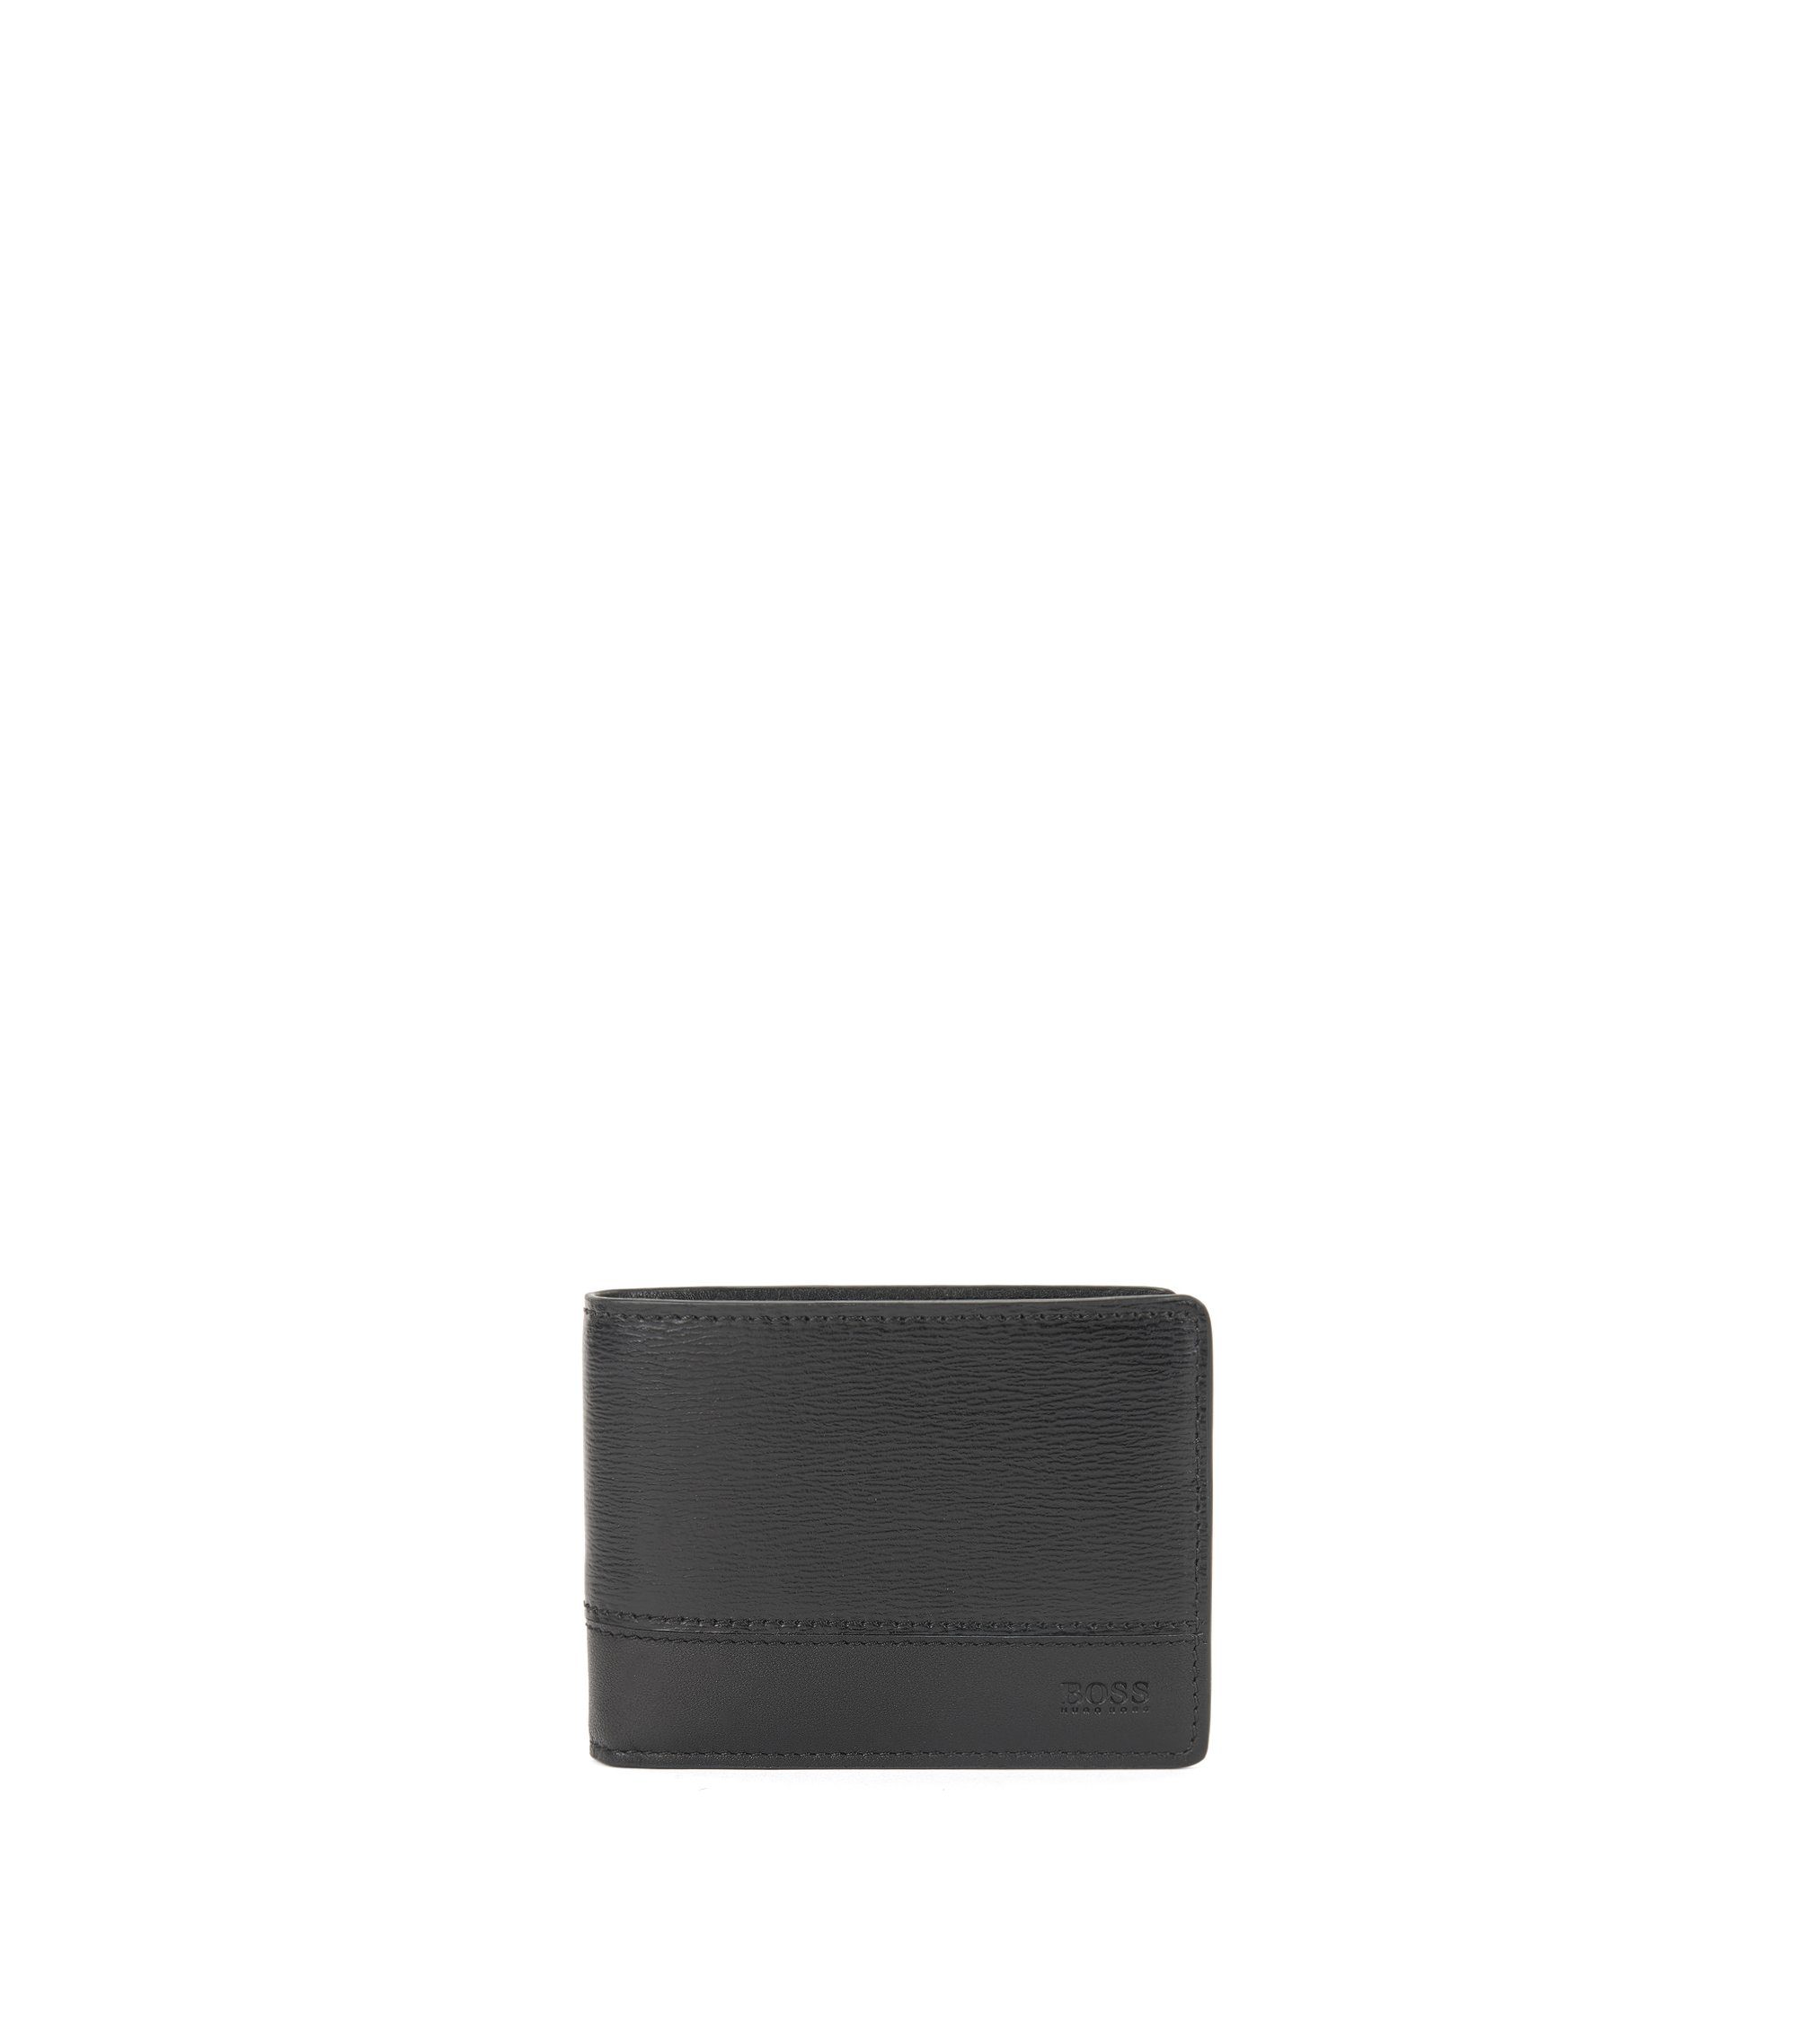 Leather Billfold Wallet | Focus 6 cc, Black